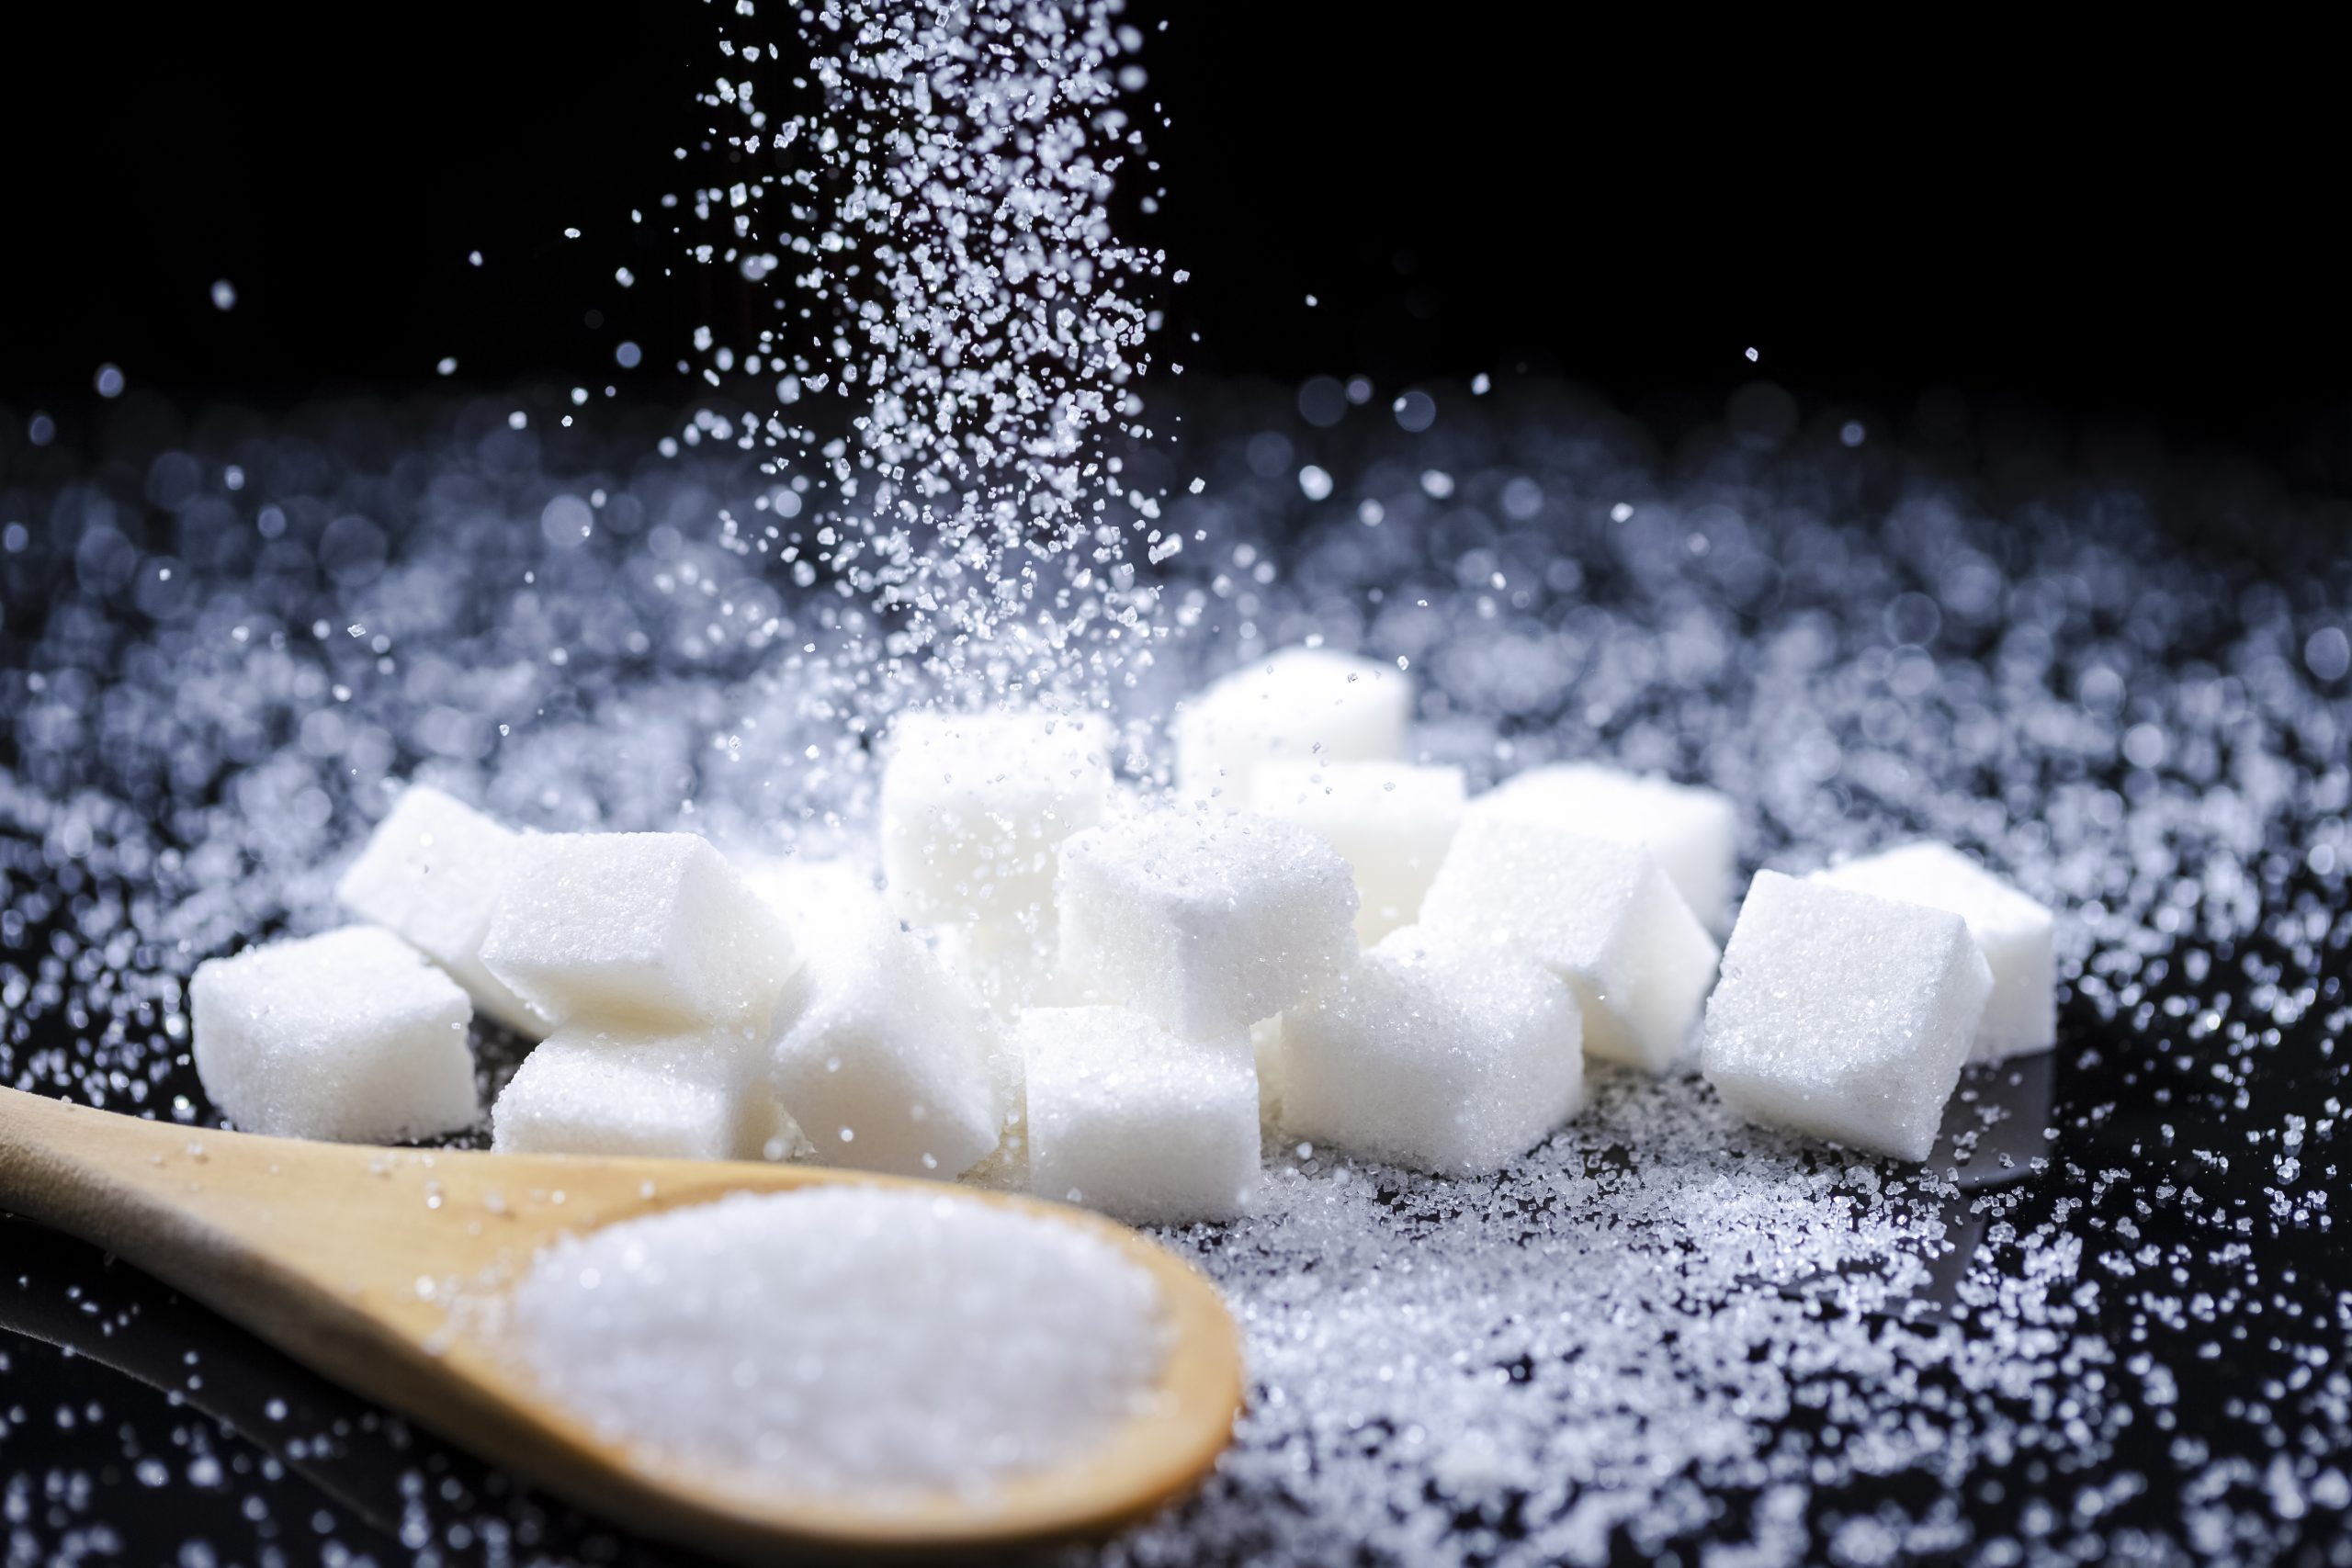 Macro Shot of White Cube Sugar And Falling Sand Sugar Along With Filled Wooden Measure Spoon. Against Black Background. Horizontal Orientation